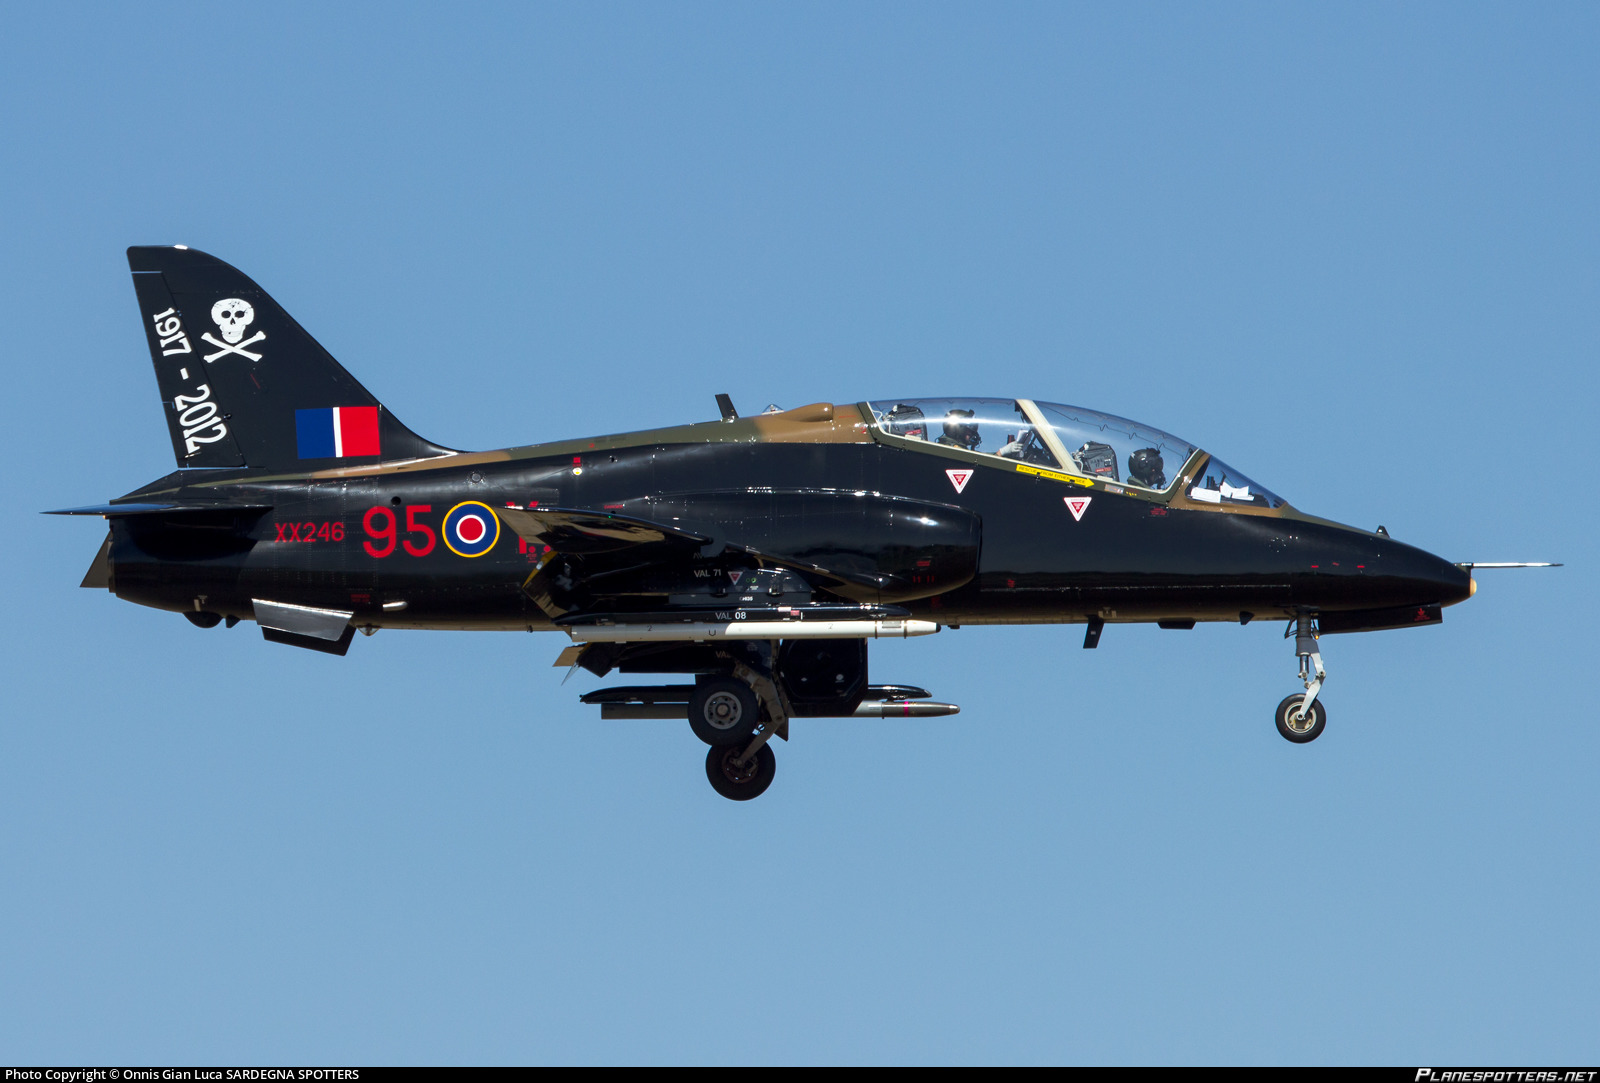 xx246-united-kingdom-royal-air-force-raf-british-aerospace-hawk-t1a_PlanespottersNet_362165_a74871e159